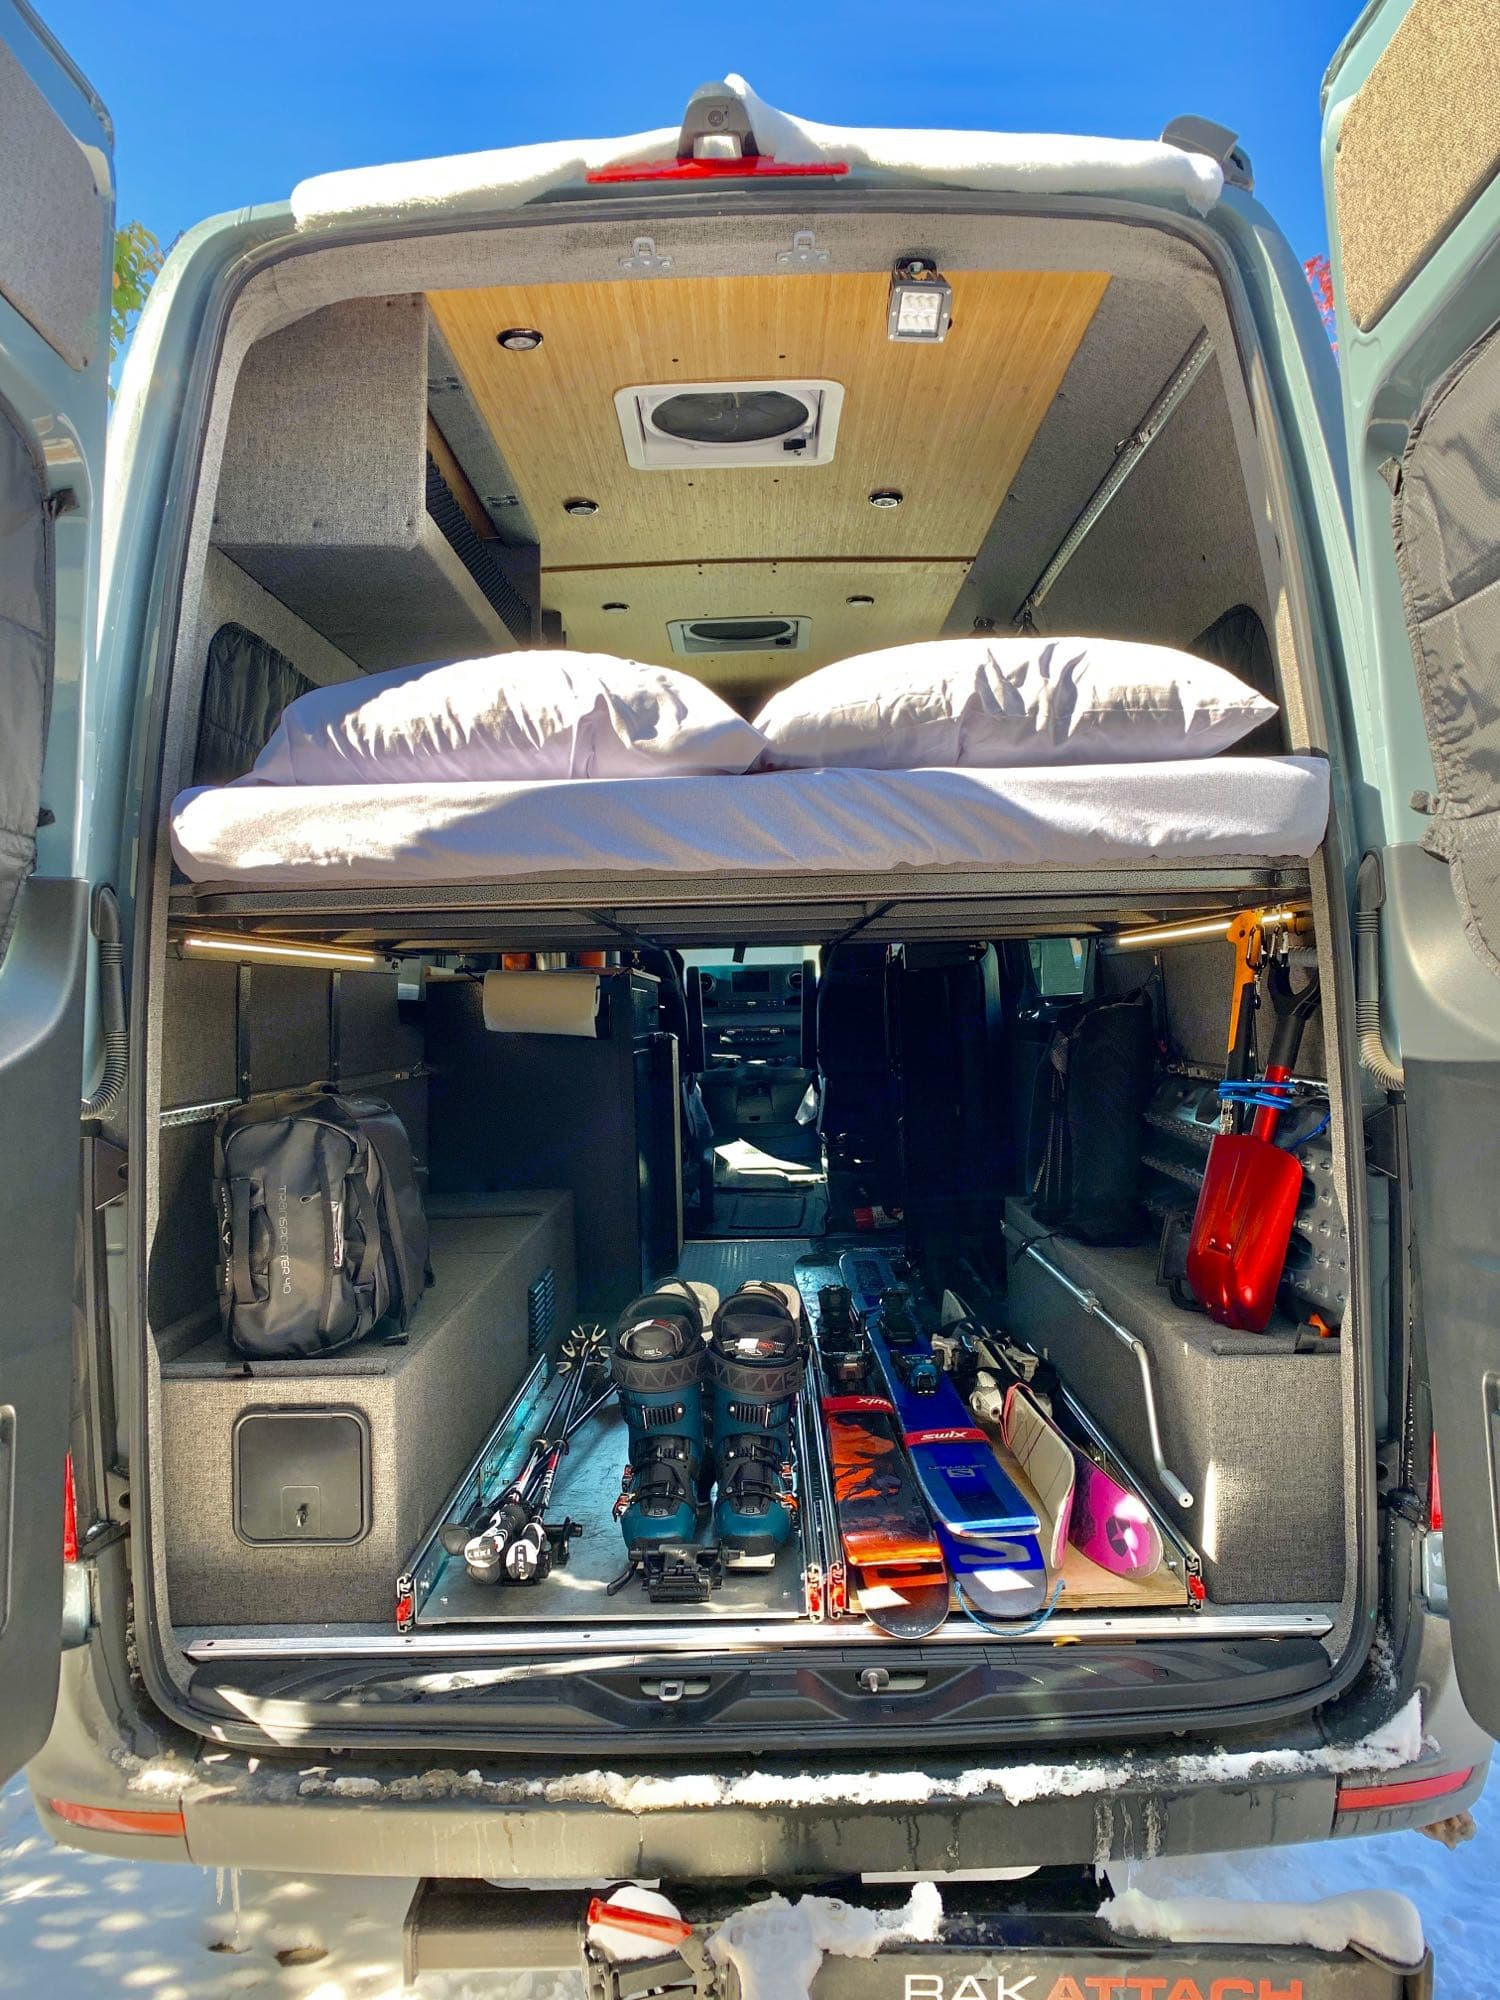 ample room for skis, boards, and winter gear. Mercedes-Benz Sprinter 4x4 315CDI MWB 2020